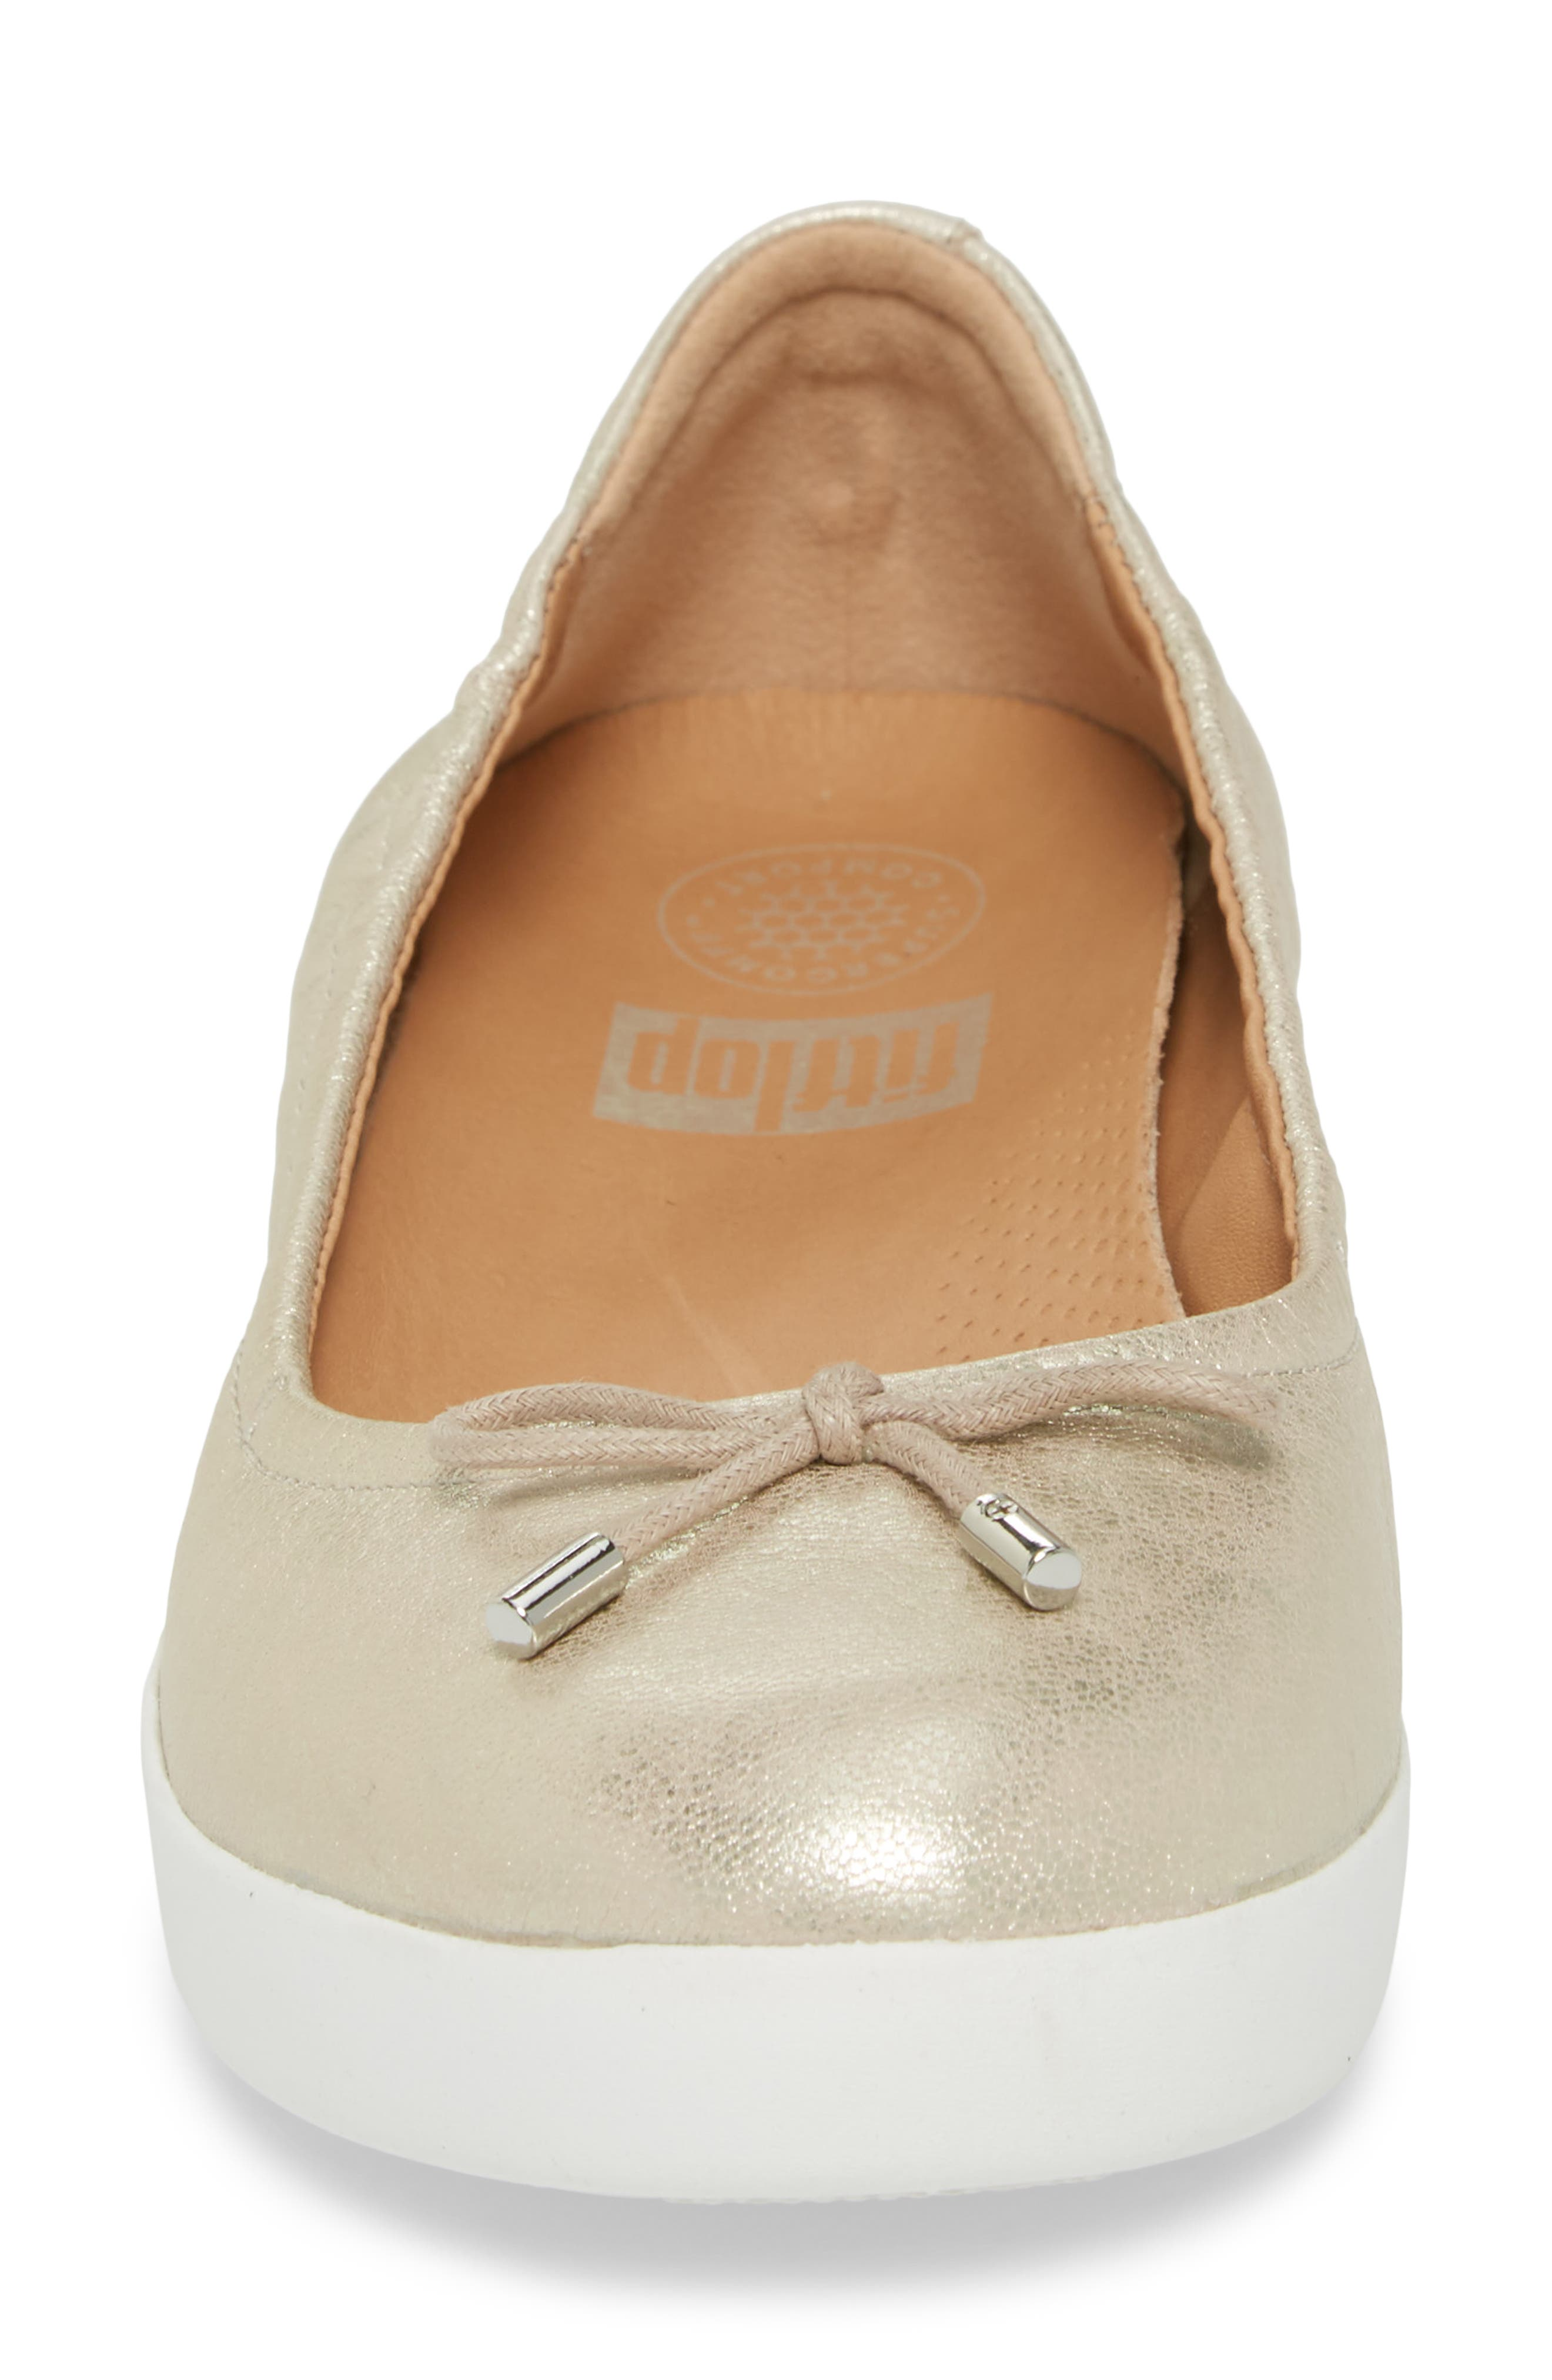 Superbendy Ballerina Flat,                             Alternate thumbnail 4, color,                             METALLIC SILVER LEATHER